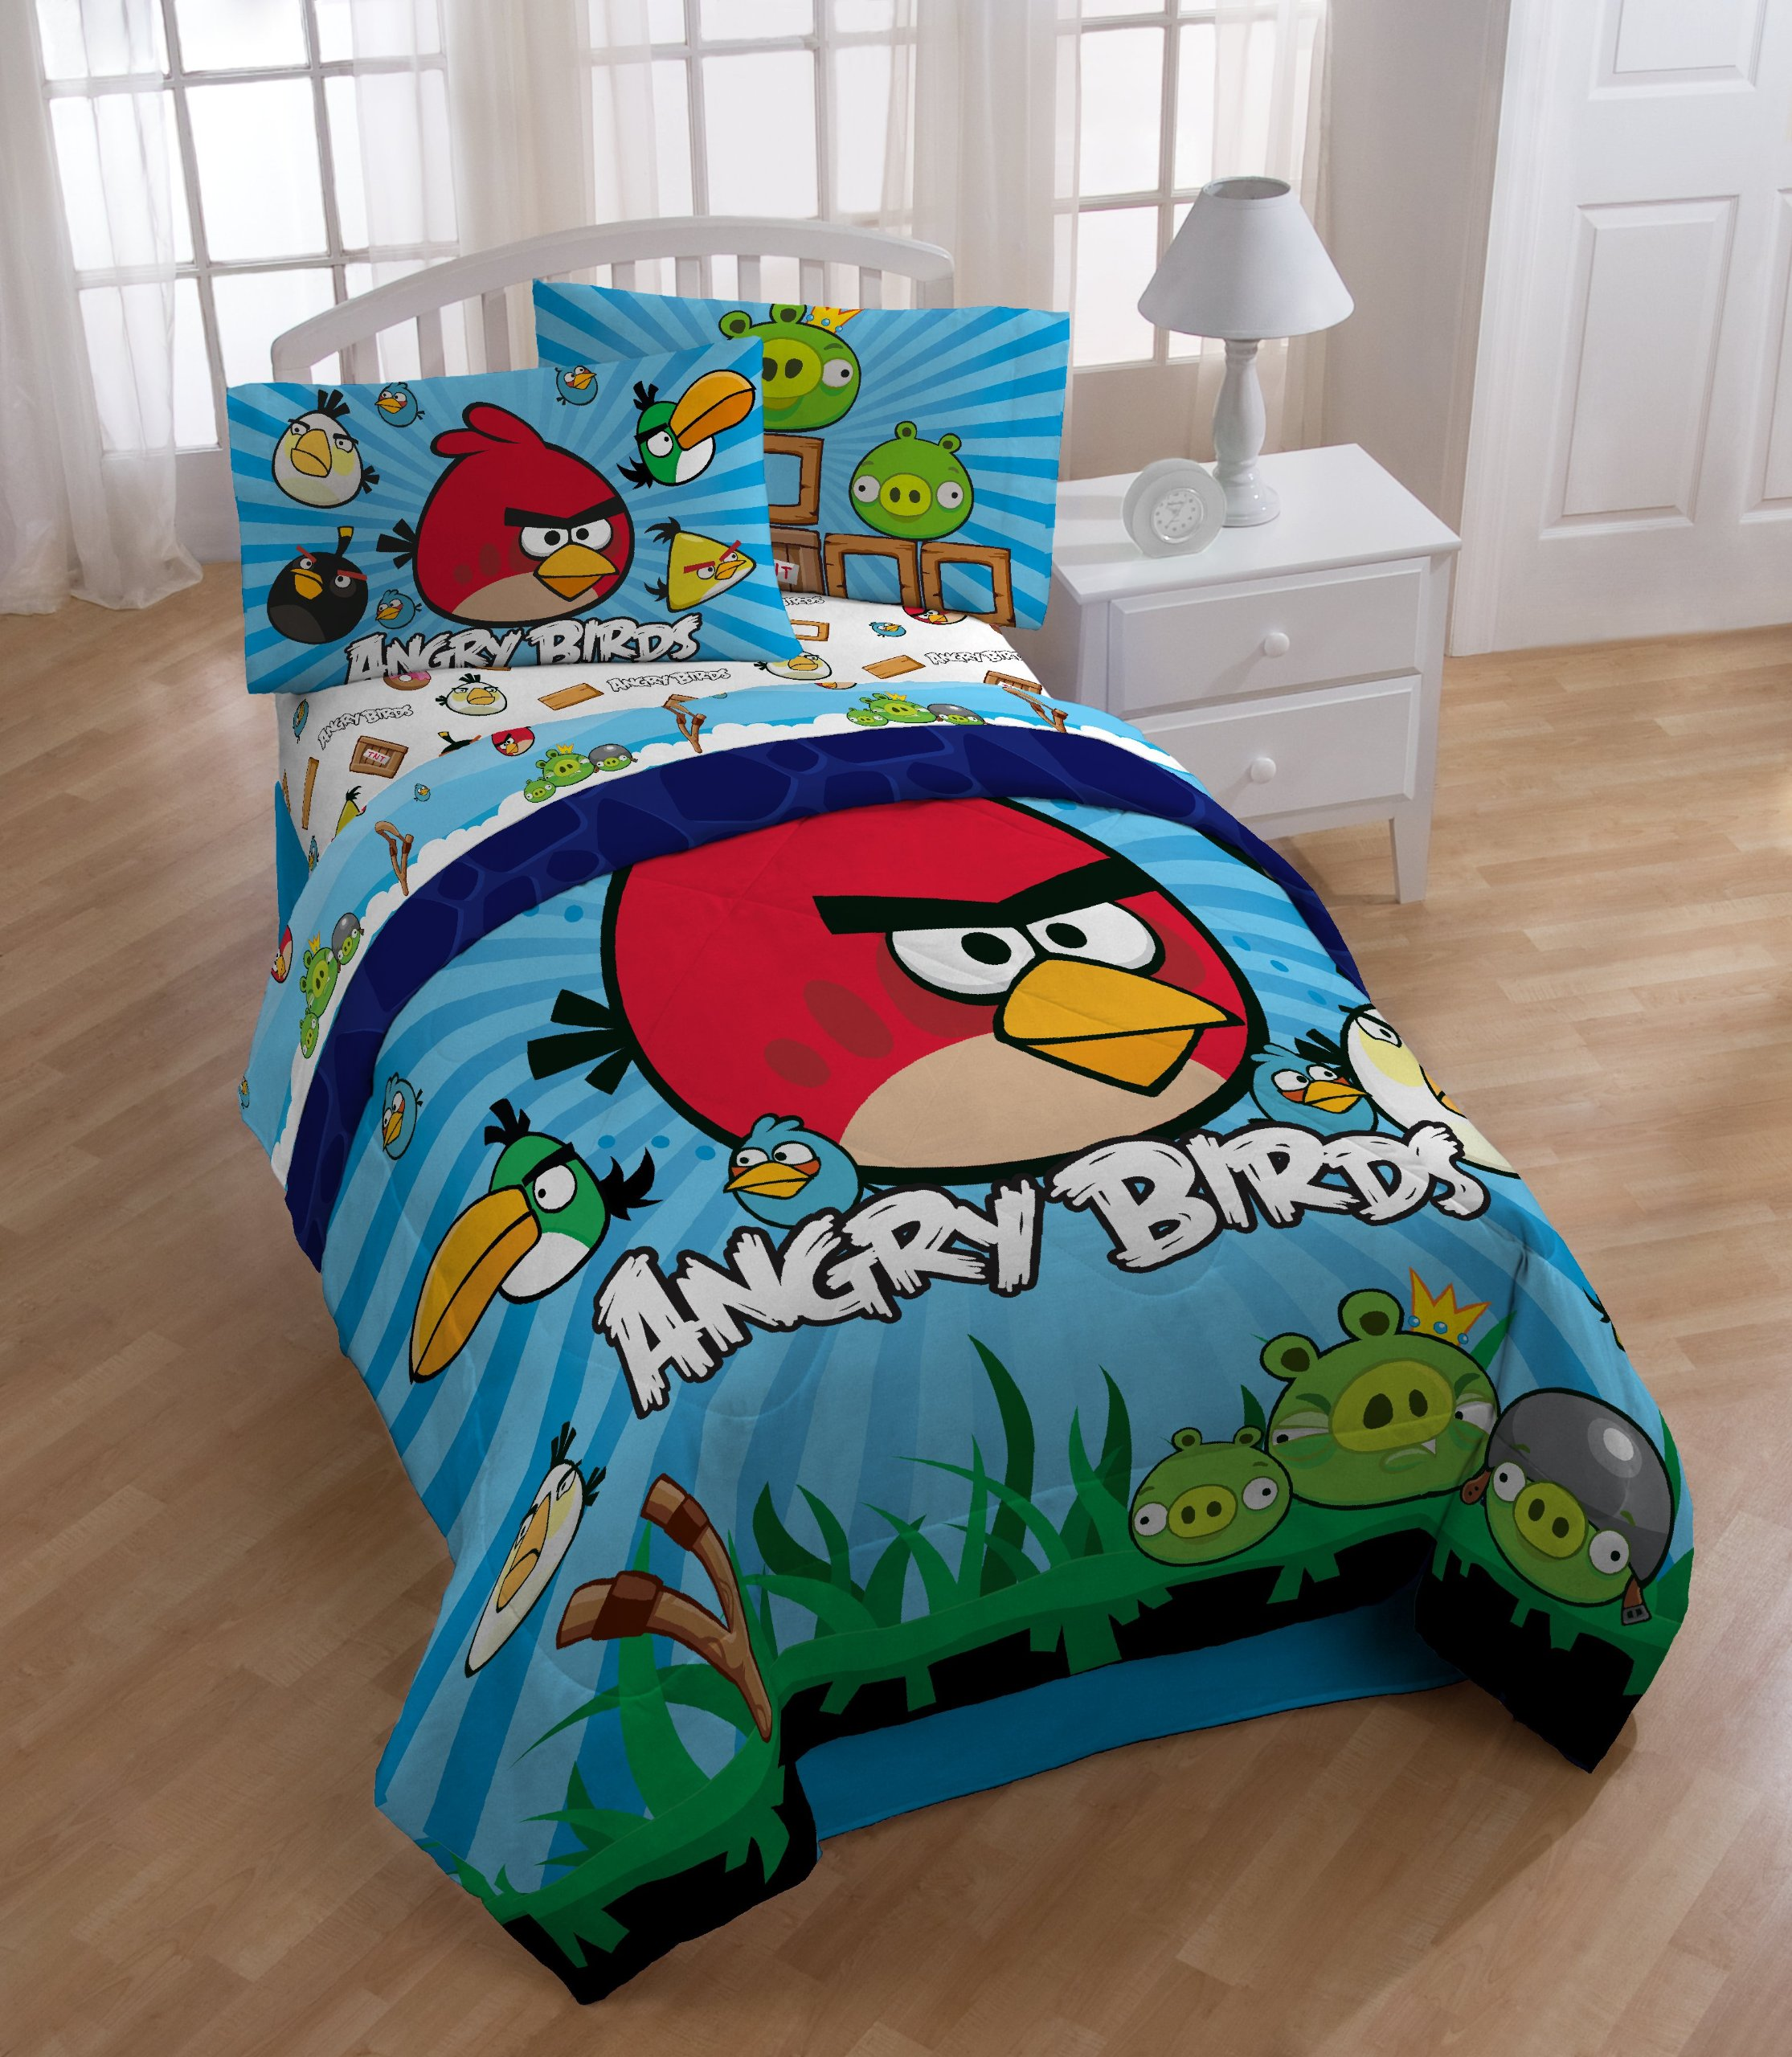 Angry Birds Application Game Twin-Single Bed Comforter